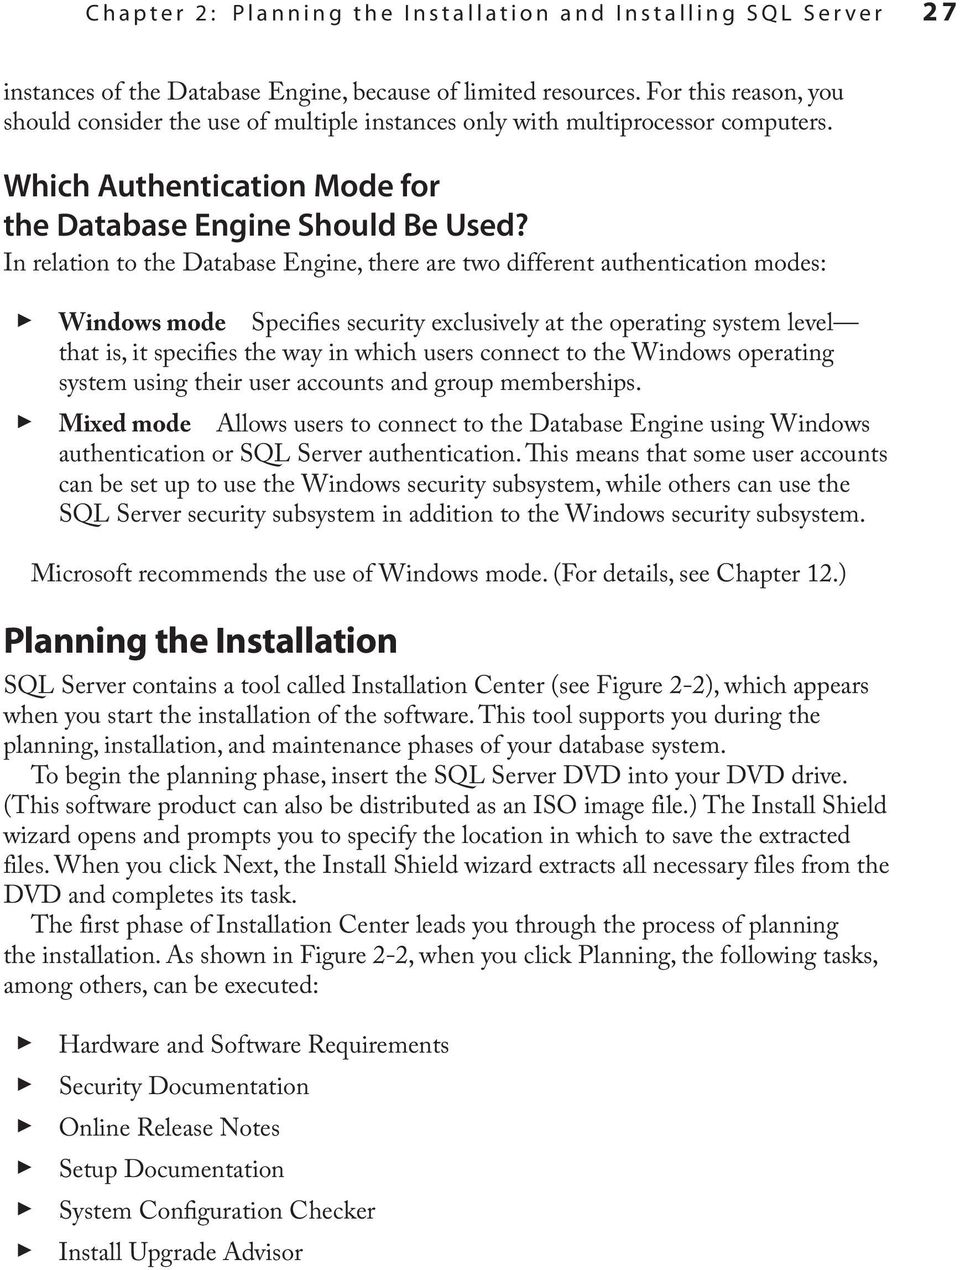 In relation to the Database Engine, there are two different authentication modes: Windows mode Specifies security exclusively at the operating system level that is, it specifies the way in which